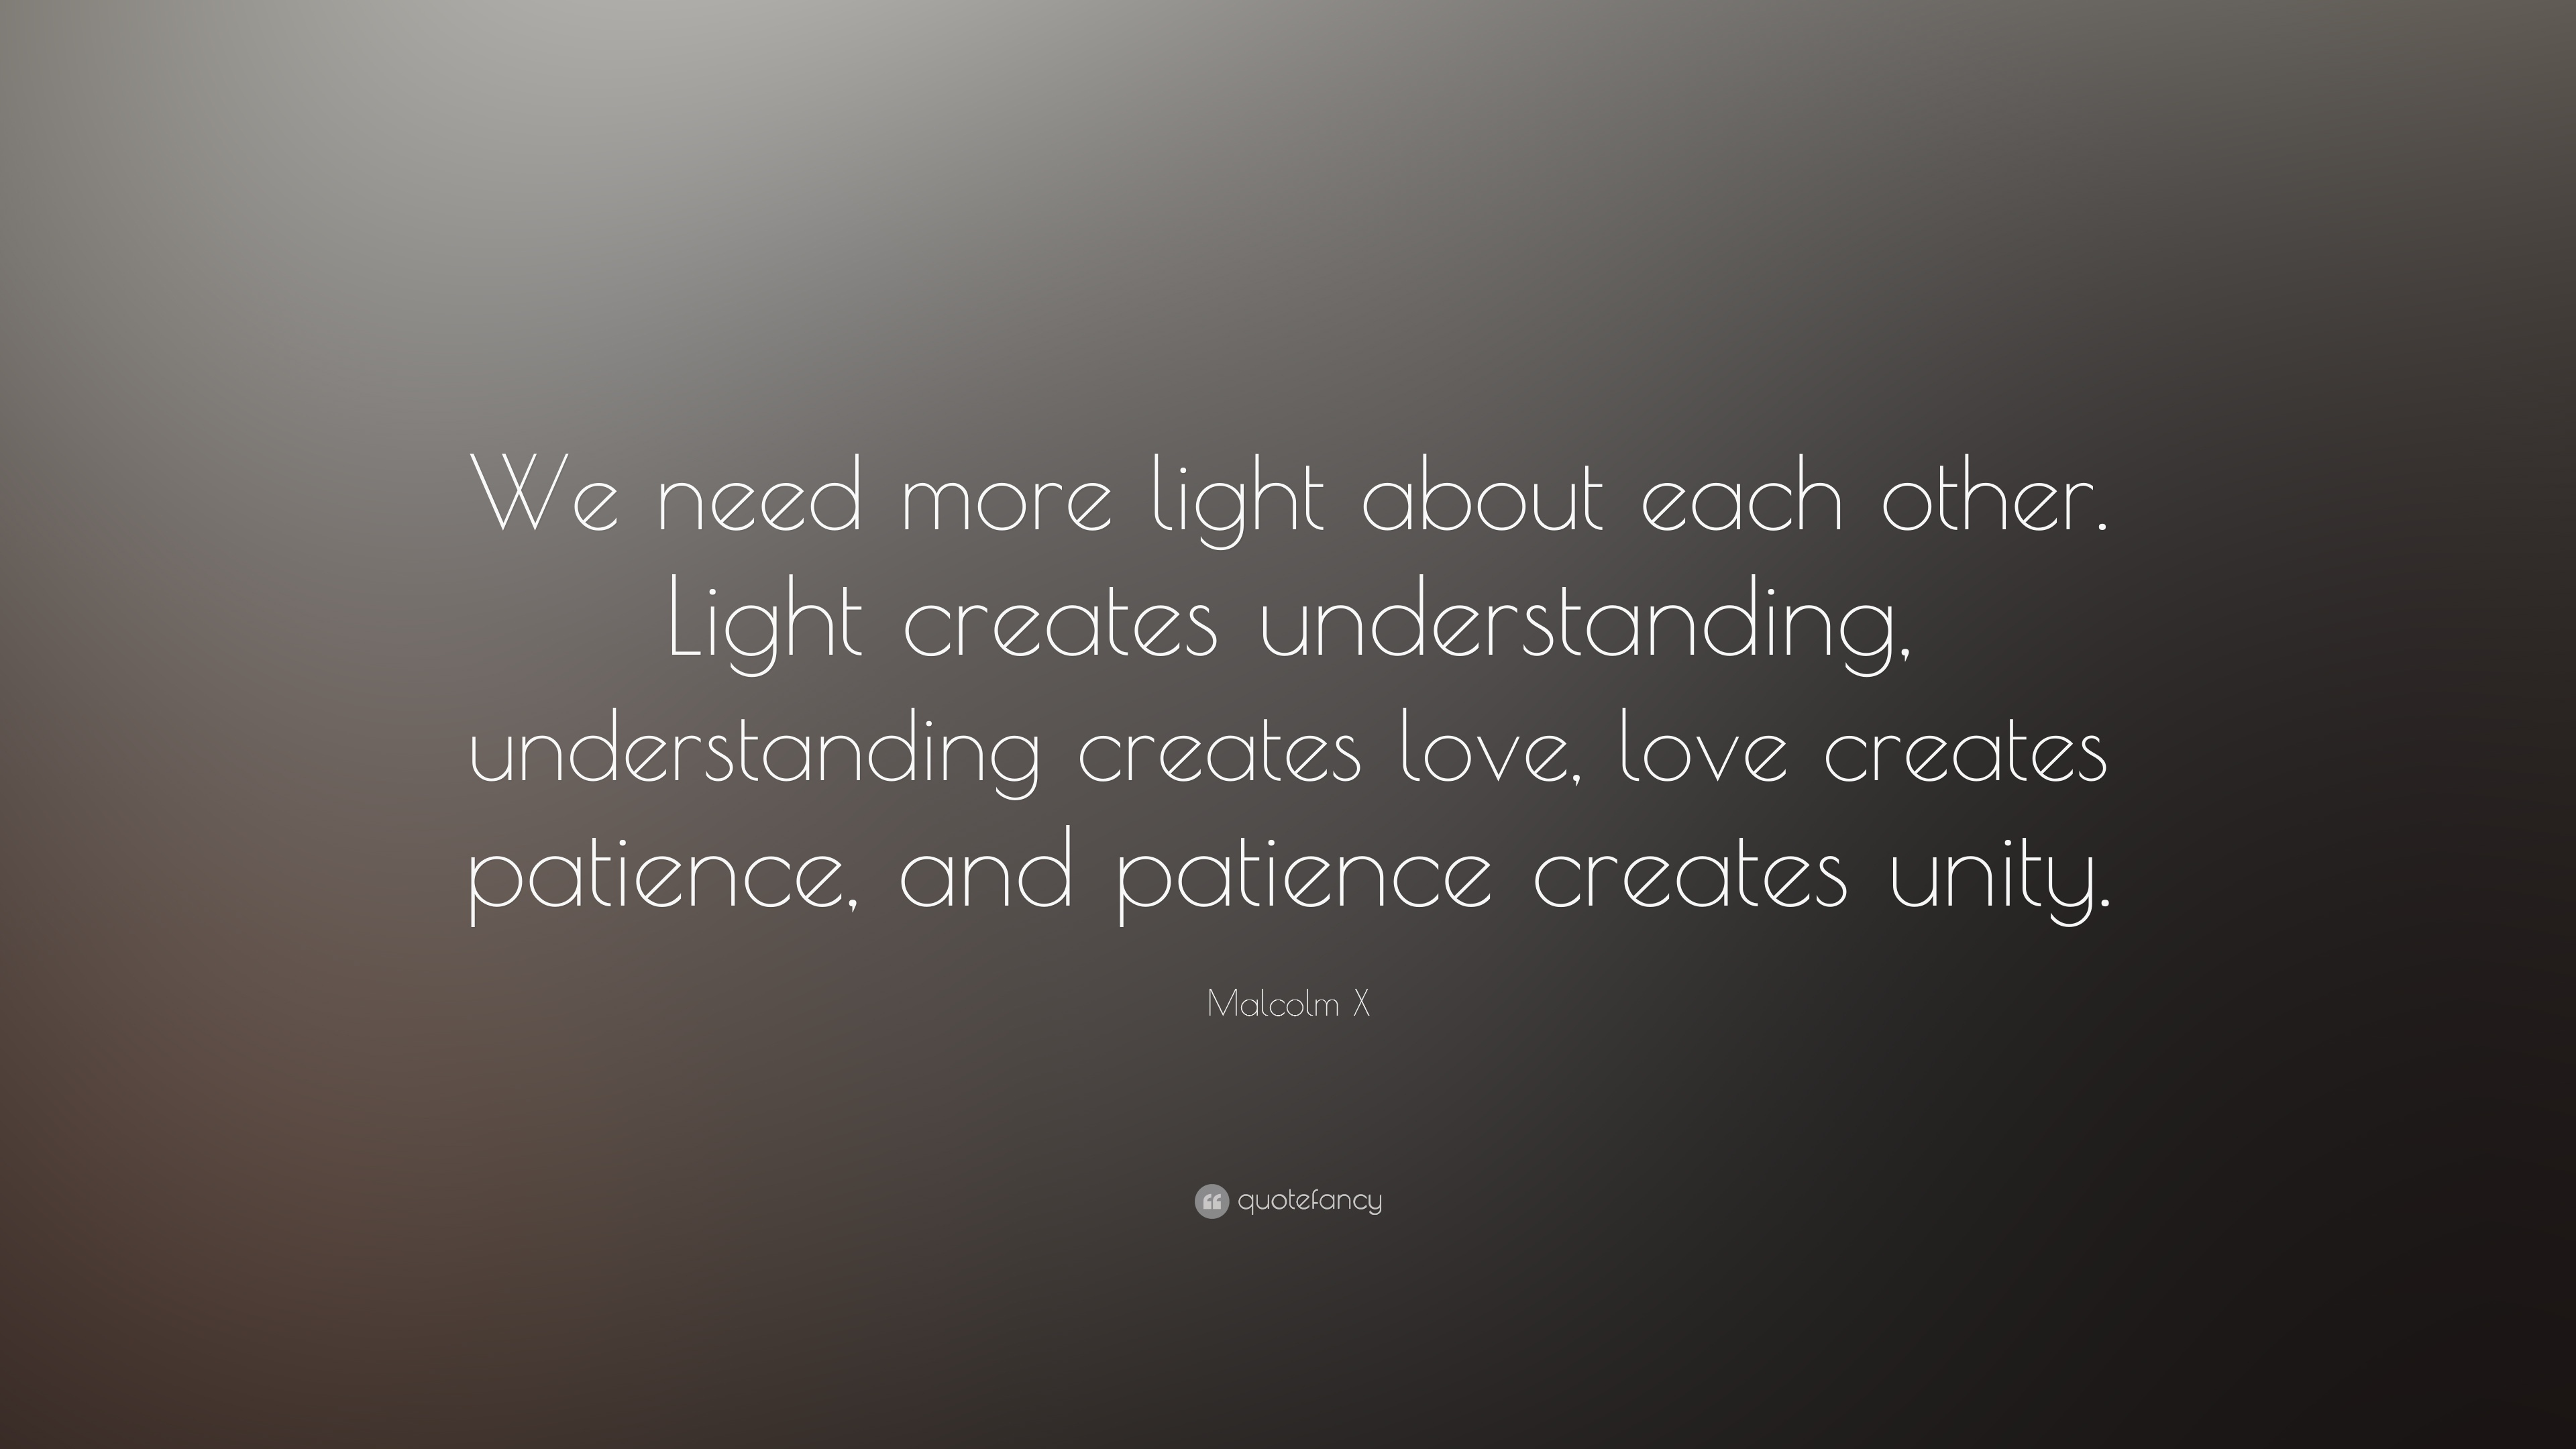 MalcolmxQuotes About Love : ... creates love, love creates patience, and patience creates unity